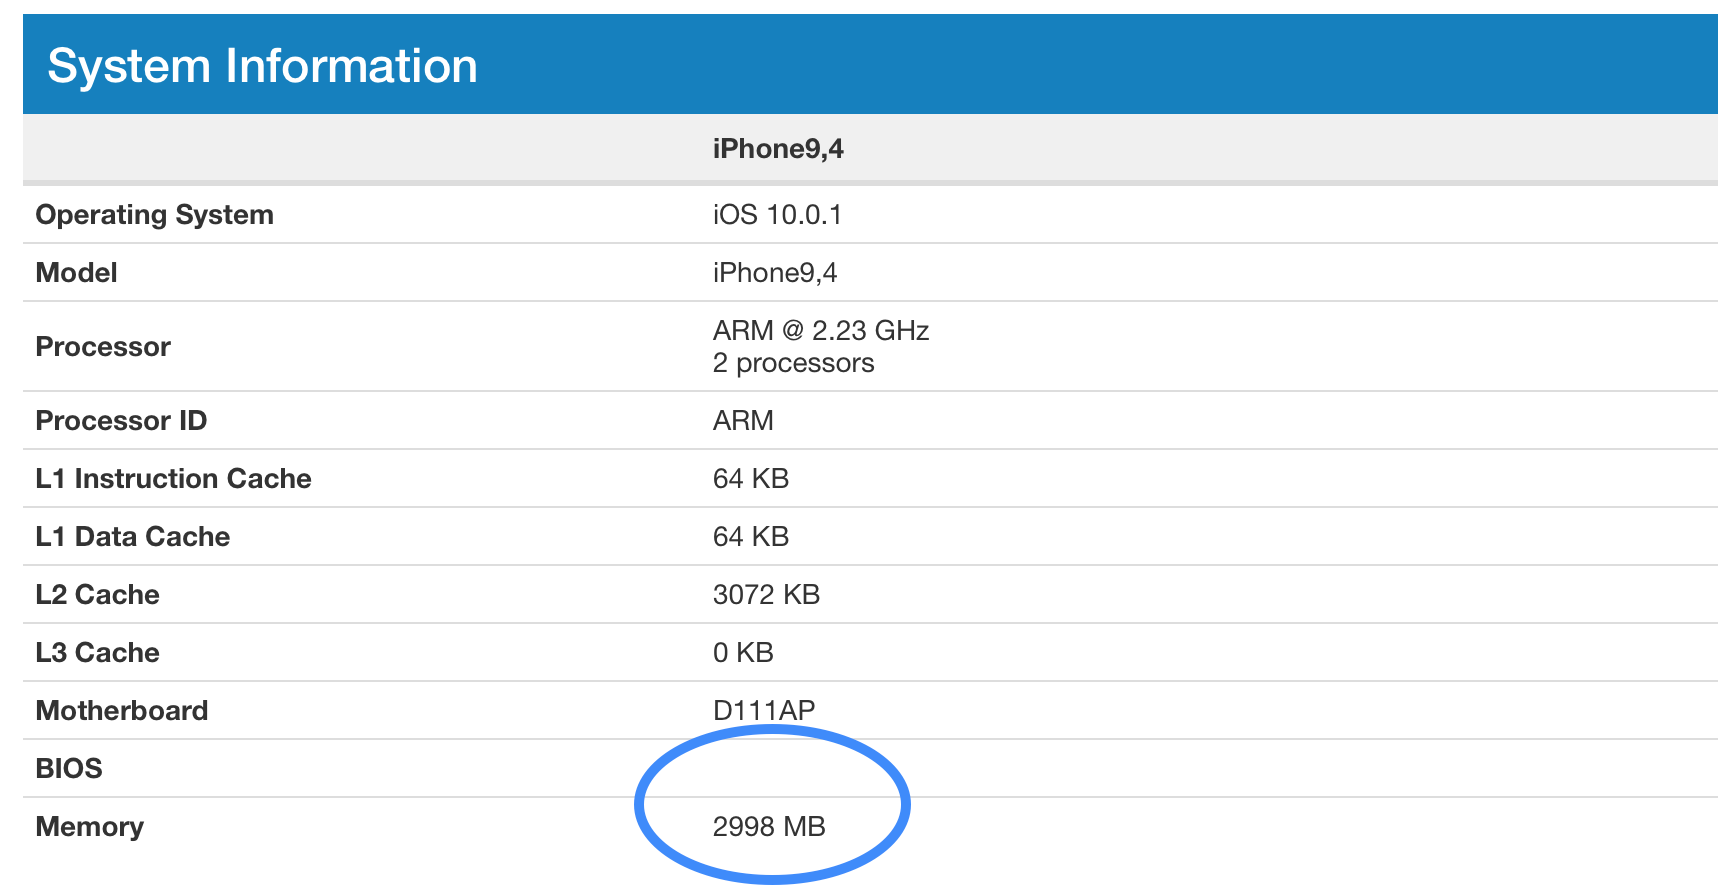 iphone-7-plus-3gb-ram-geekbench